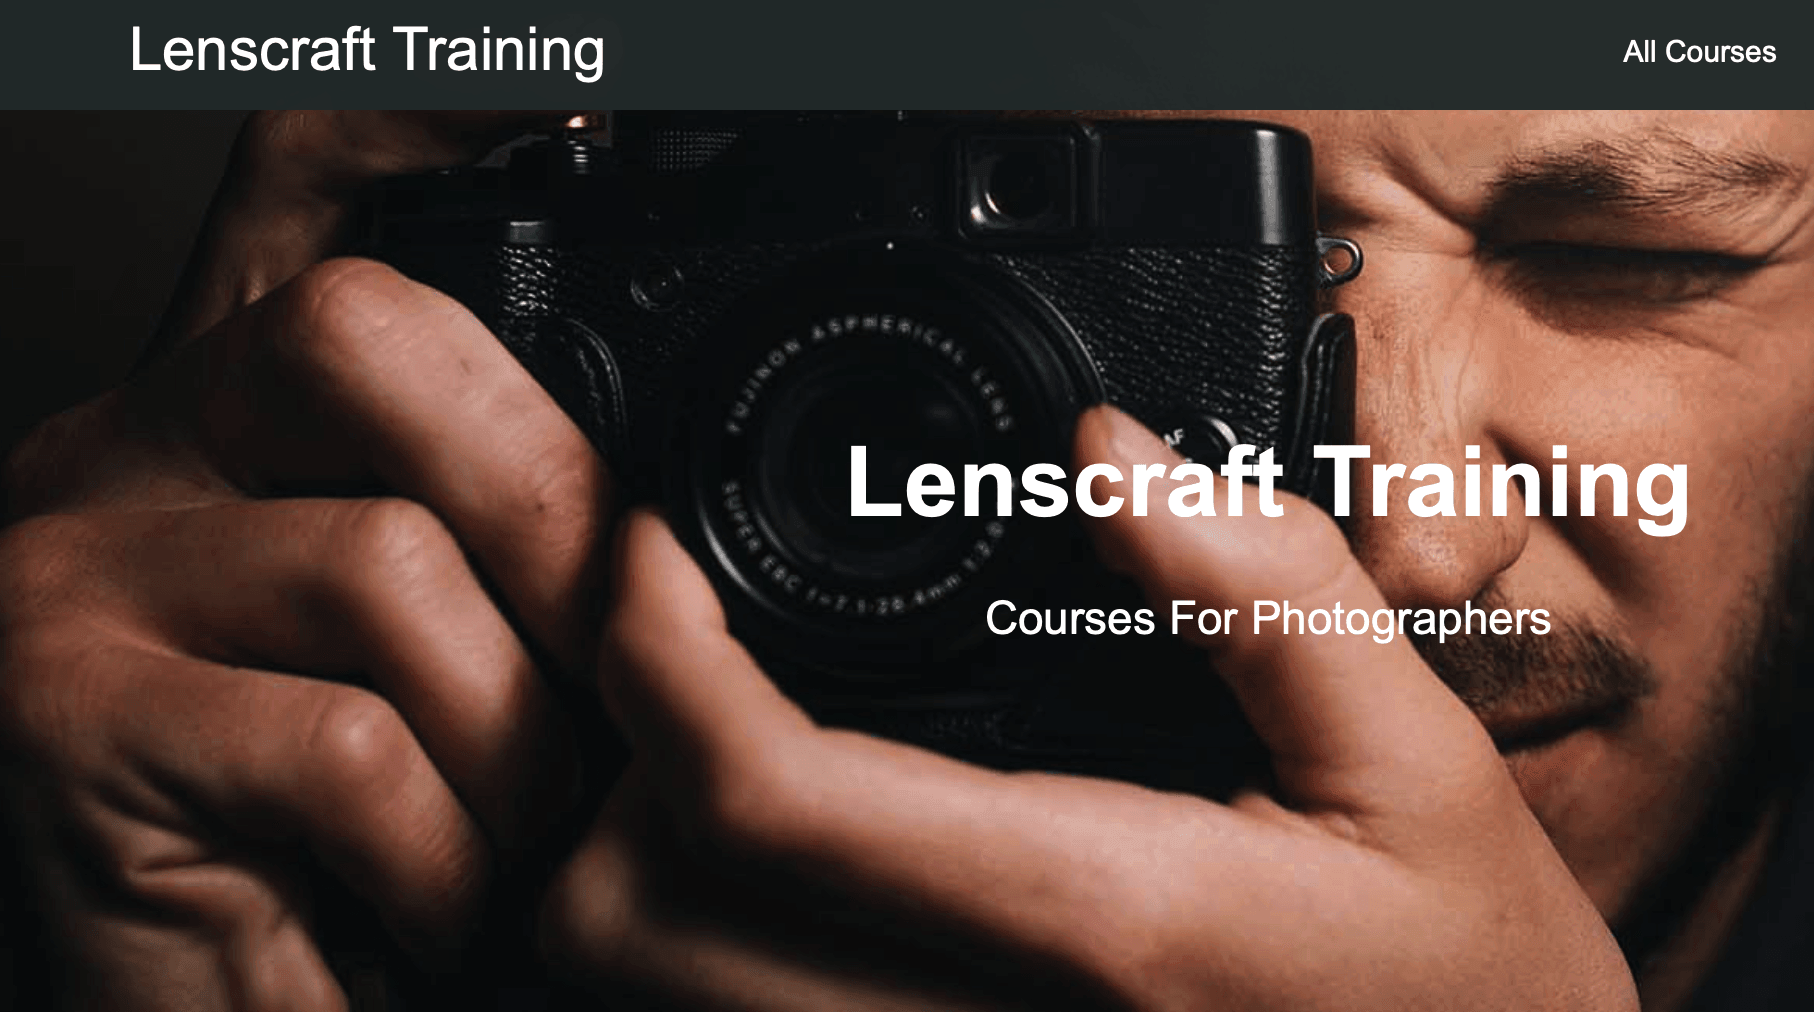 Lenscraft Training – Courses For Photographers